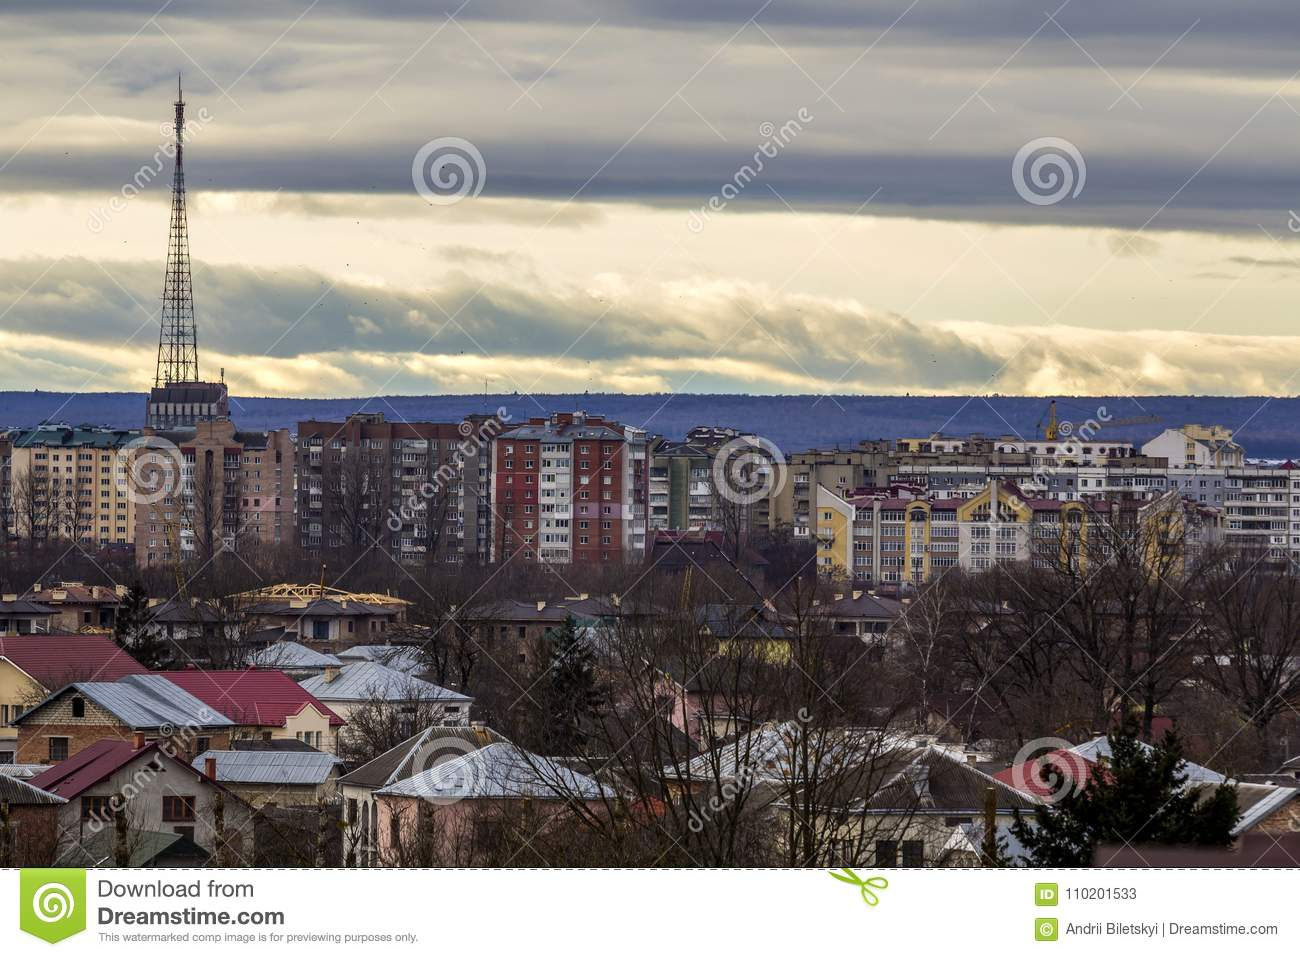 Aerial view of Ivano-Frankivsk city, Ukraine with high buildings